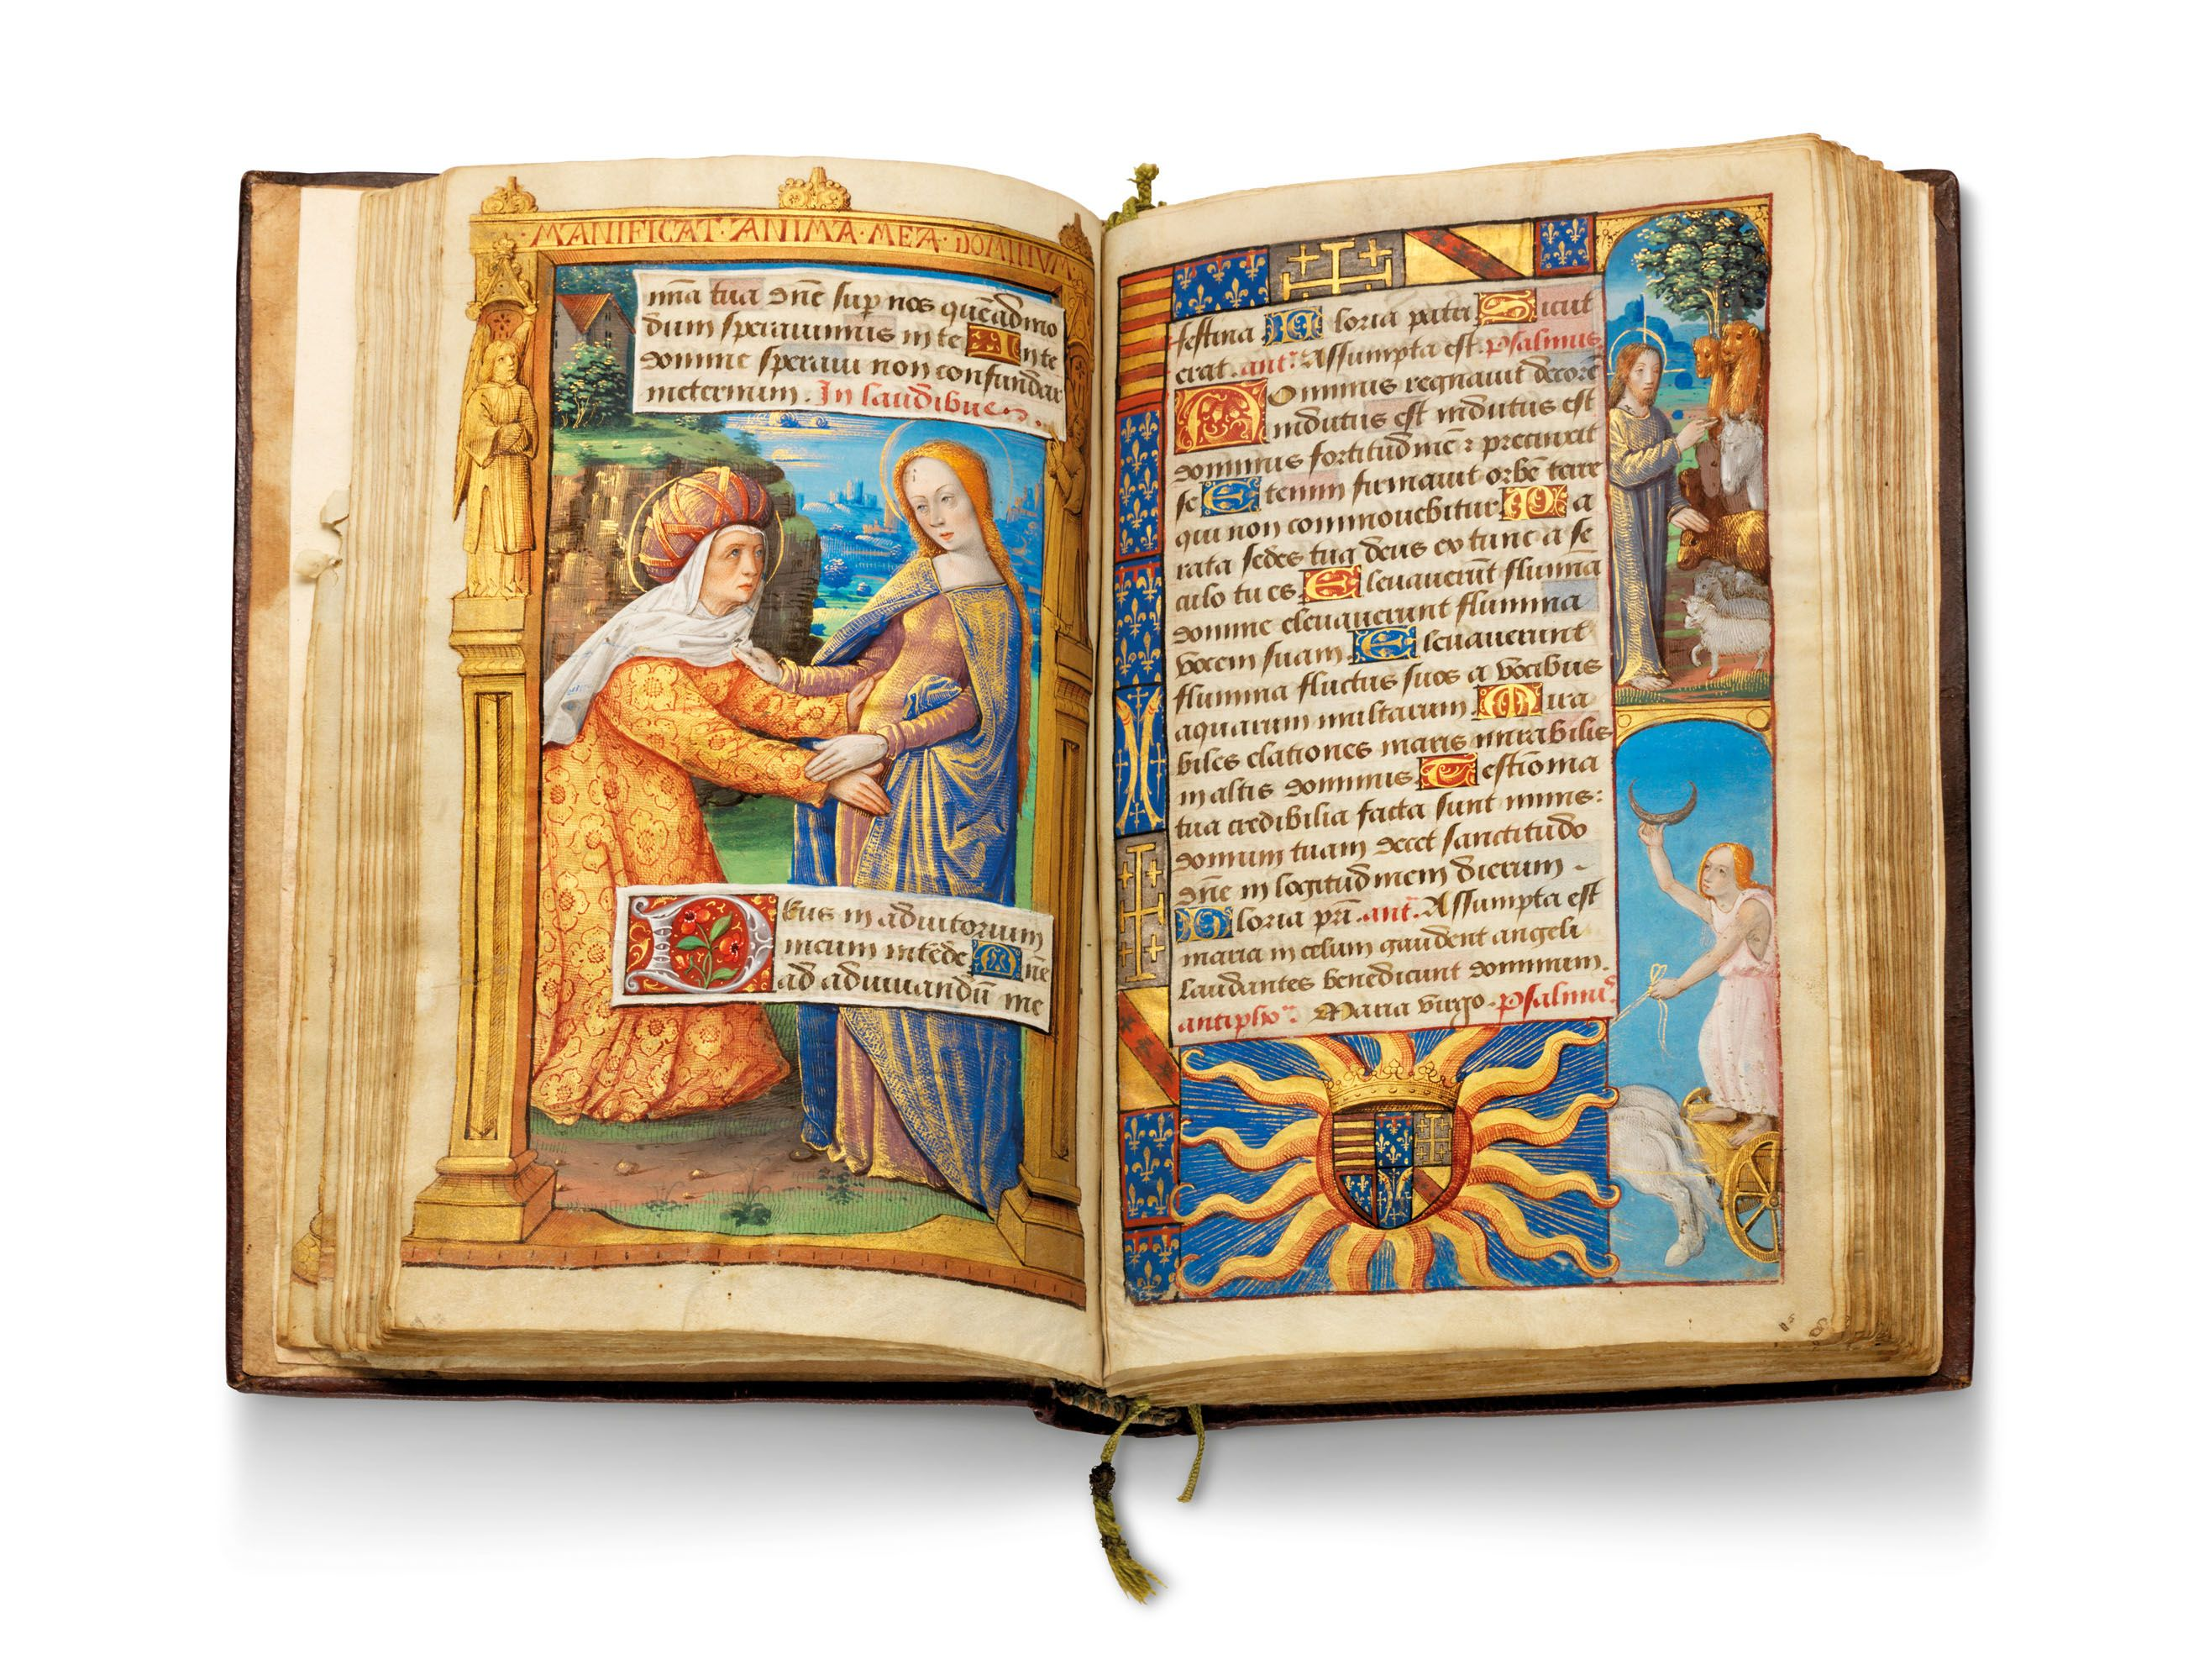 The Almanac Hours by the Monypenny Master of the Monypenny Breviary, sold for £1.6m